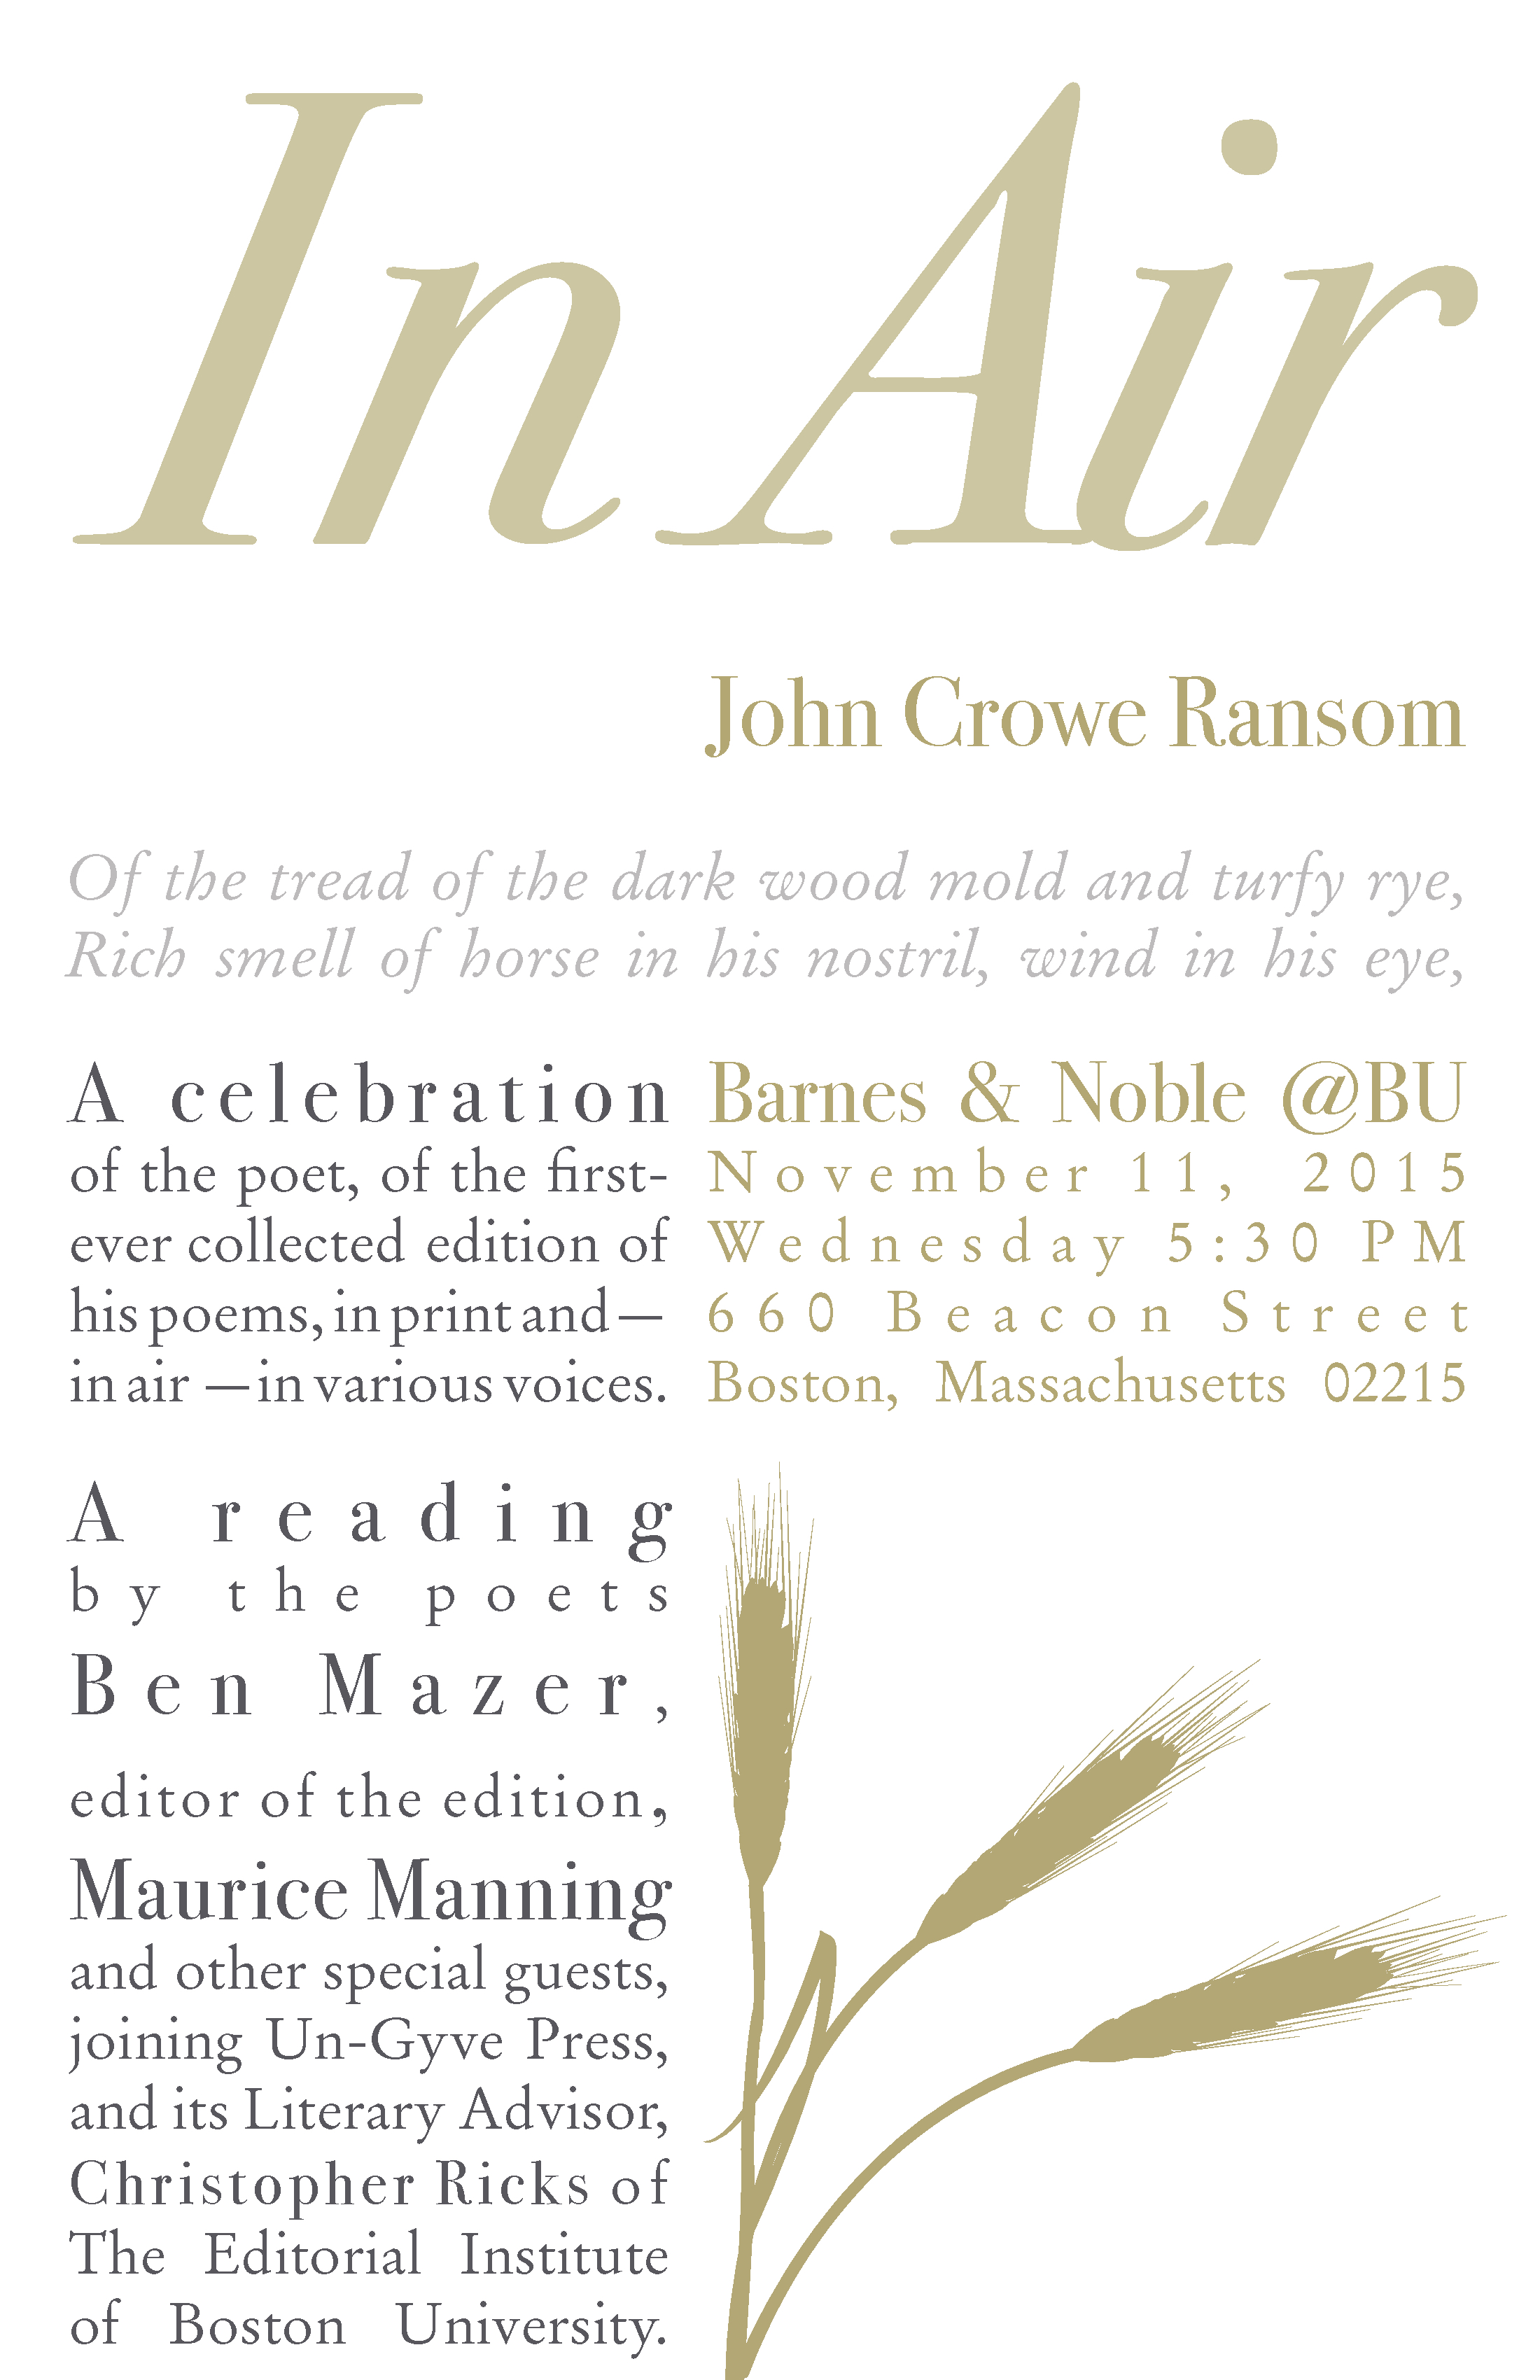 A celebration of the poet, of the first-ever collected edition of his poems, in print and — in air — in various voices, a reading from the work. Poets Ben Mazer, editor of the edition and Maurice Manning join Un-Gyve Press, its Literary Advisor, Christopher Ricks of the Editorial Institute of Boston University, and other special guests. Collected Poems of John Crowe Ransom edited by Ben Mazer (Un-Gyve Press). ( PRNewsFoto/Un-Gyve Press )